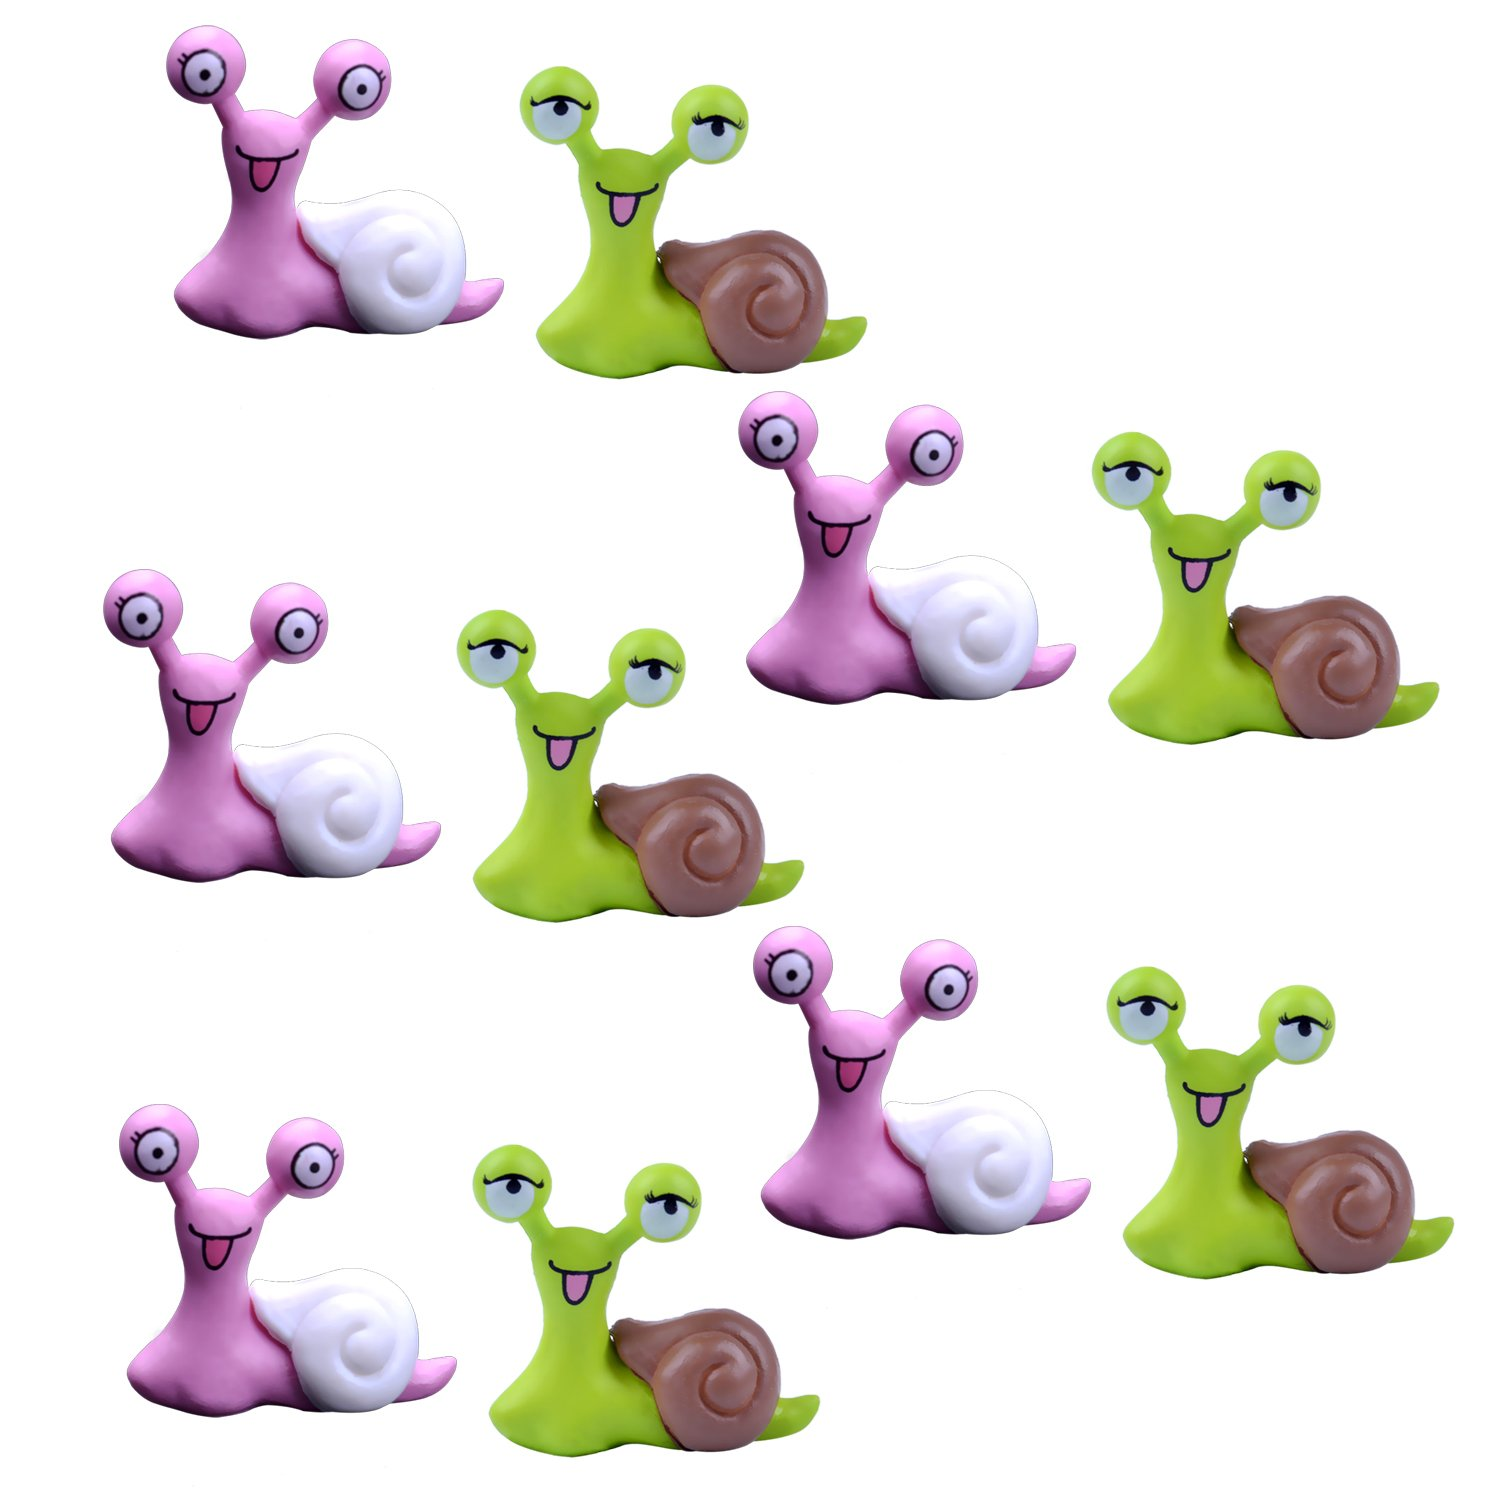 BronaGrand 10pcs Garden Ornament Miniature Snail Figurine Resin Craft Fairy Dollhouse Decor Bonsai Plant Decoration